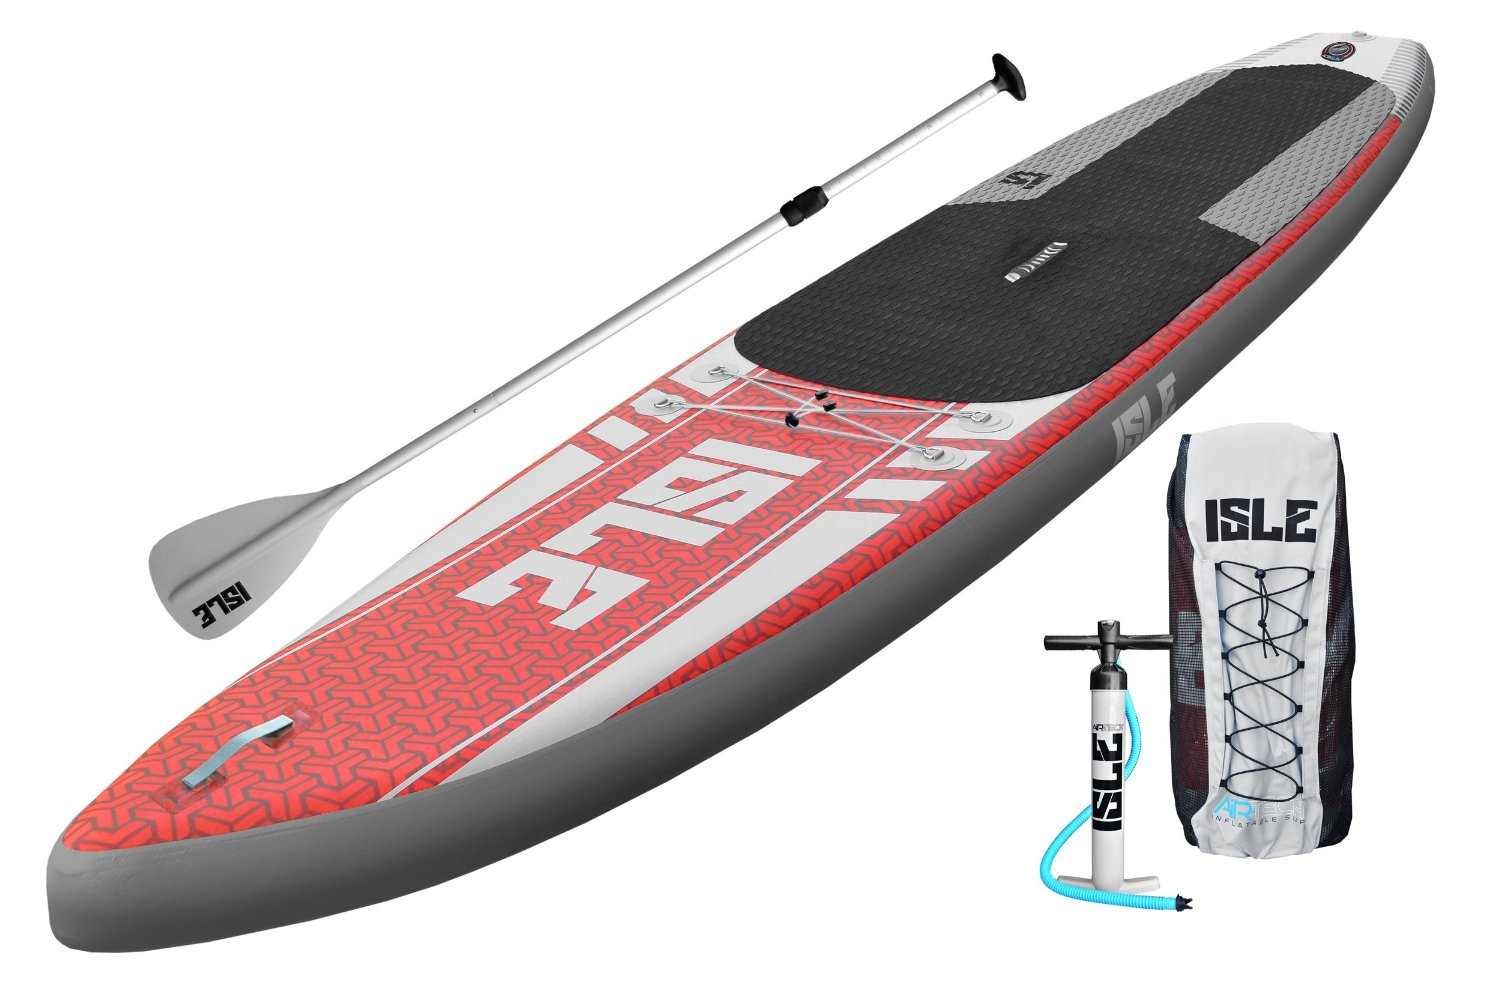 Isle Airtech 12'6 Inflatable Stand up Paddle Board Package